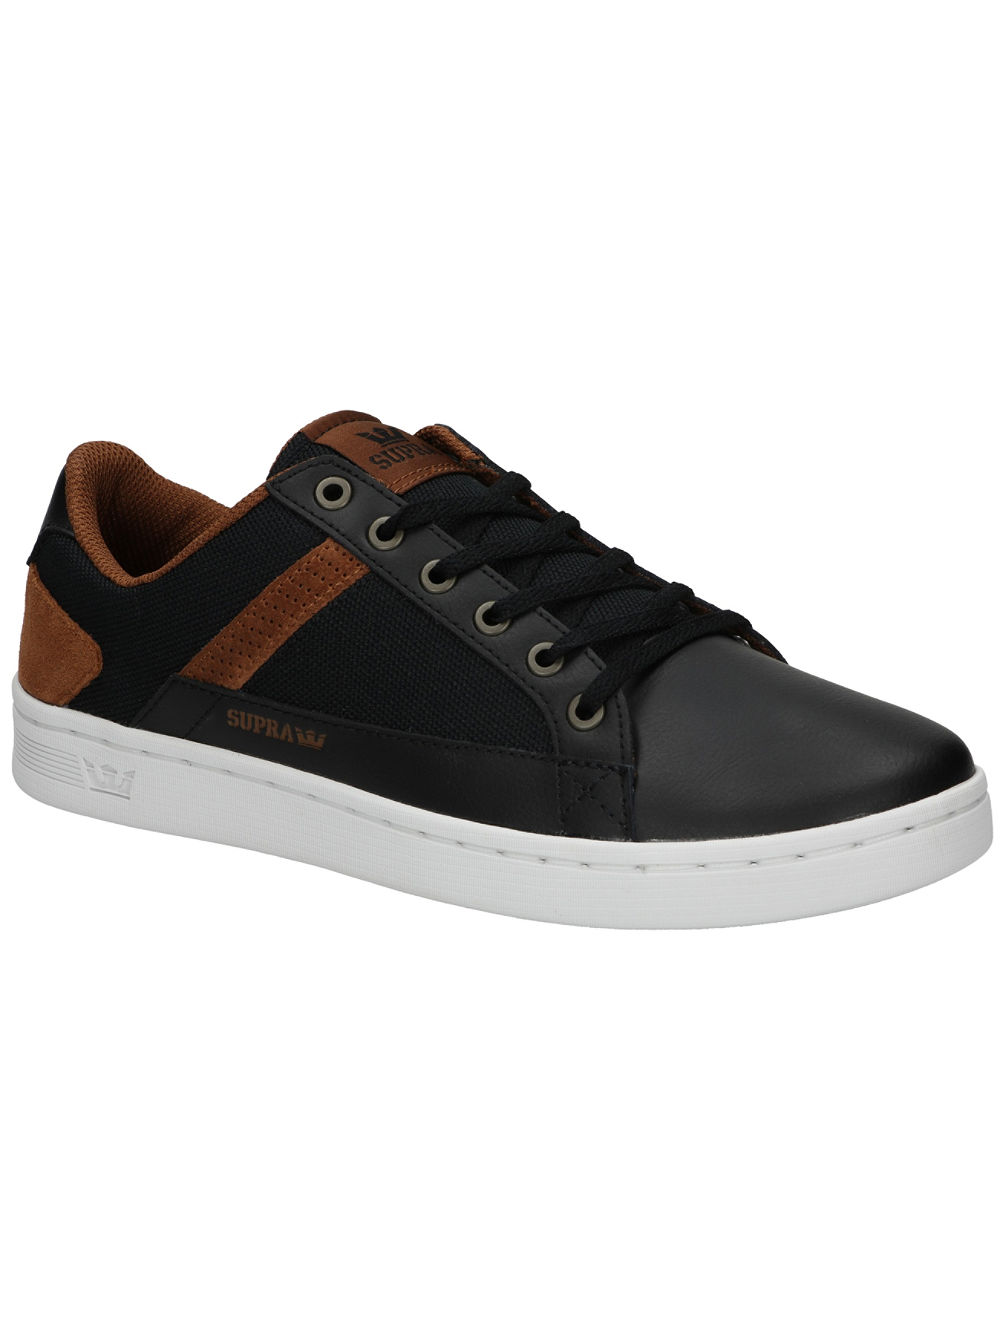 0db0a791178f Buy Supra Westlake Sneakers online at Blue Tomato